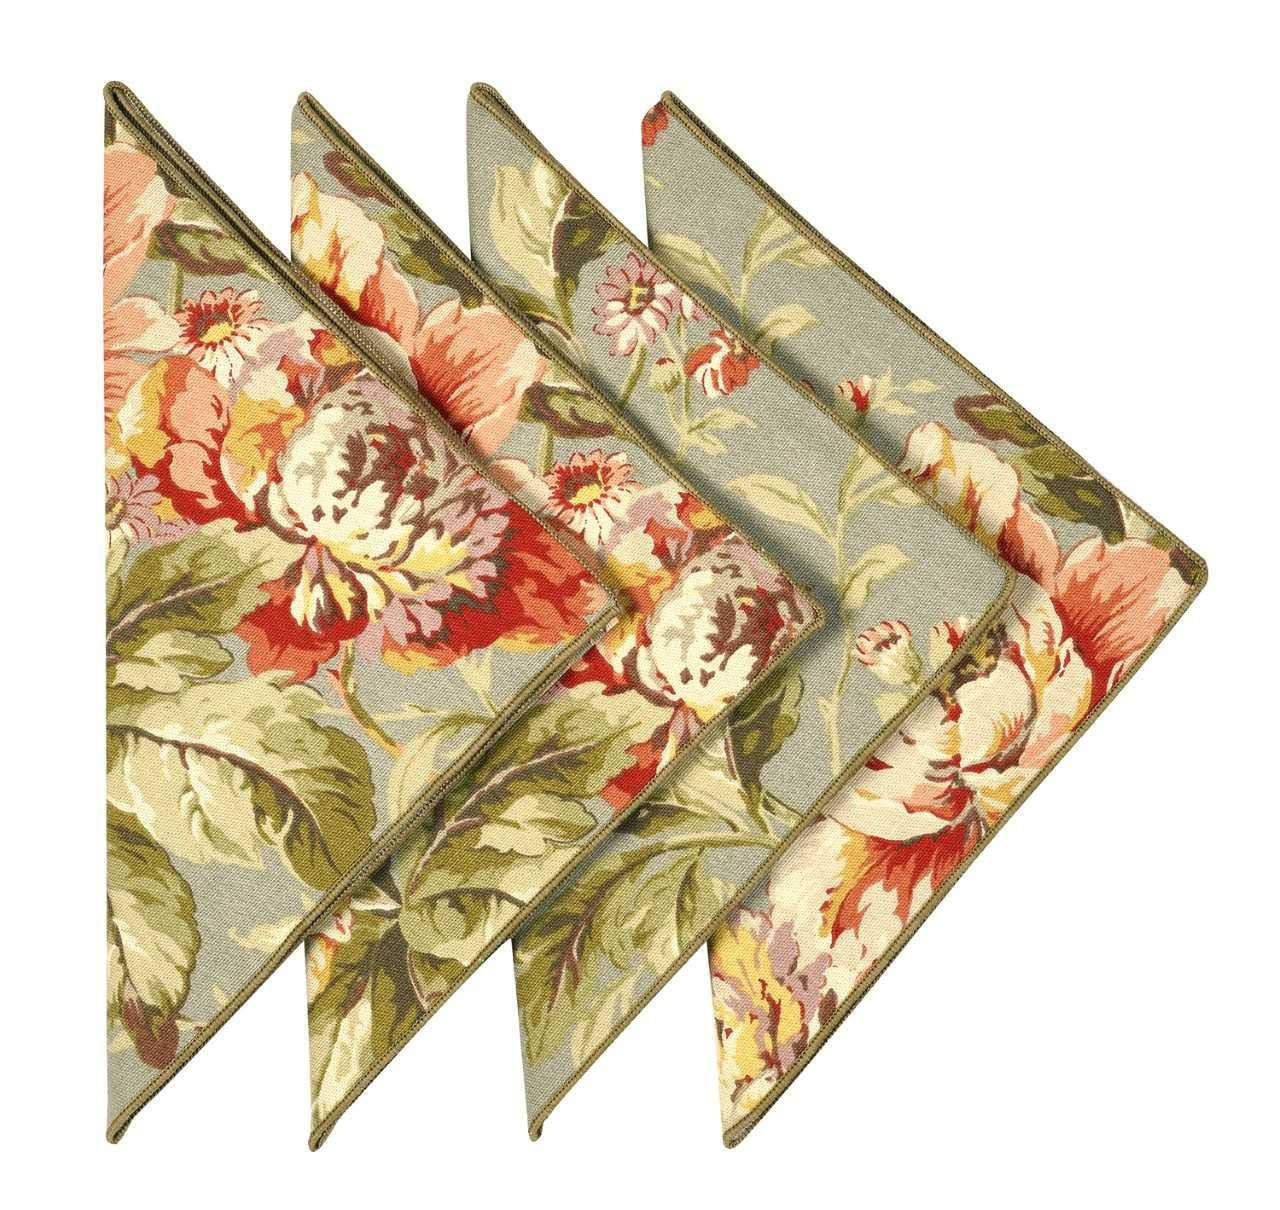 Cloth Napkins 18 Inches Linen Napkins Table Linens Cotton Fabric Set of 12 Floral Decorative Things